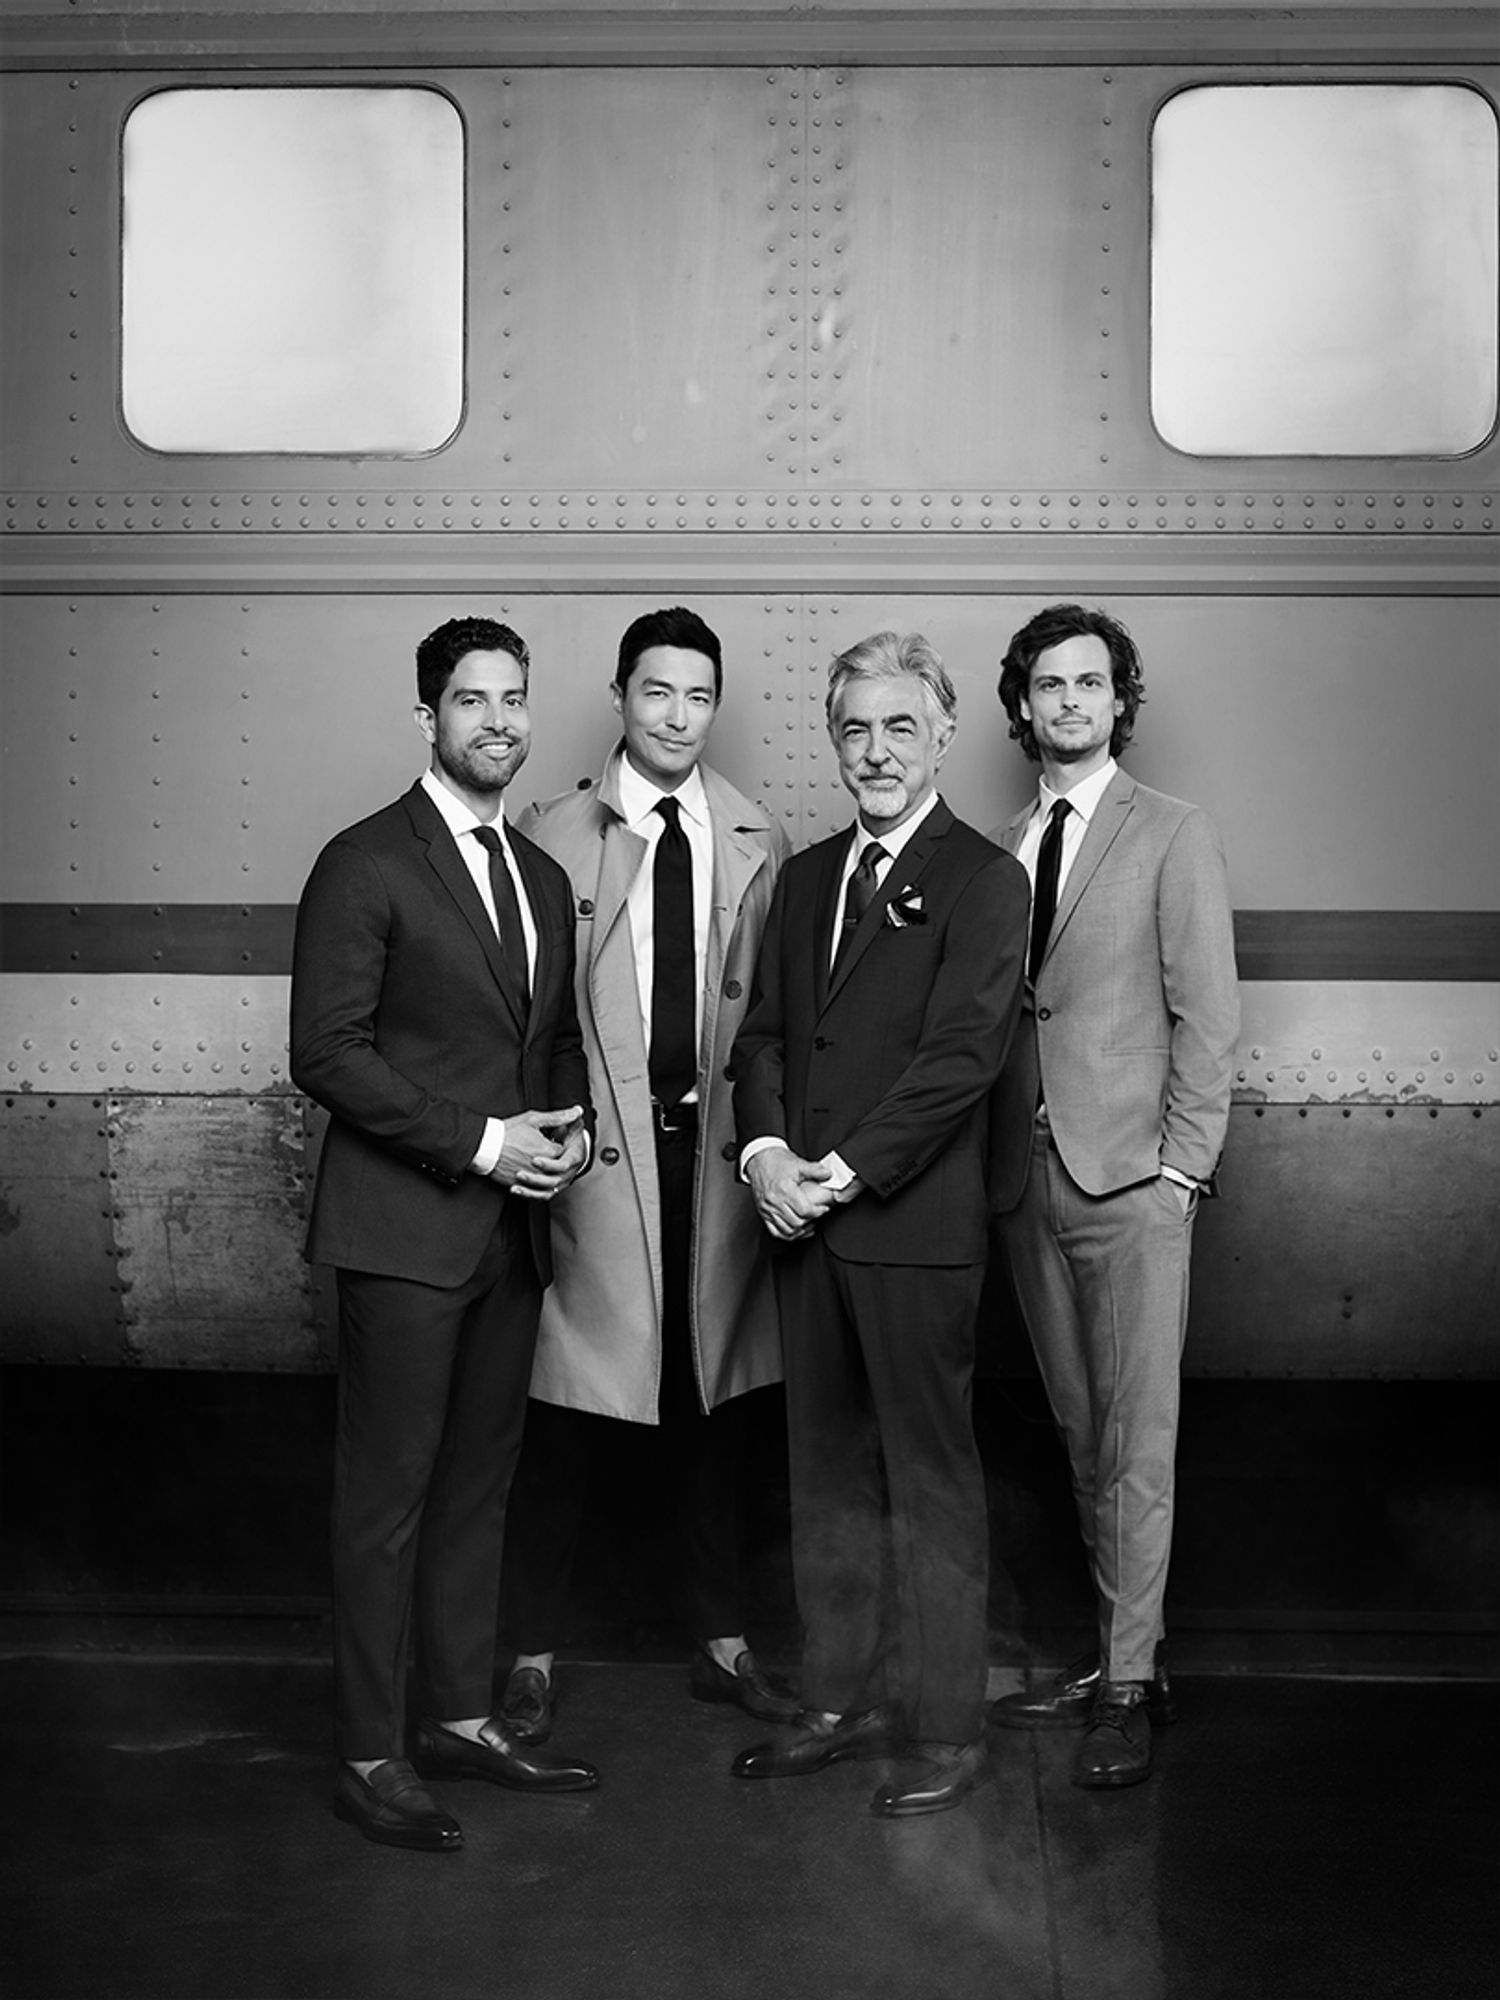 group of men wearing suits in front of train black and white